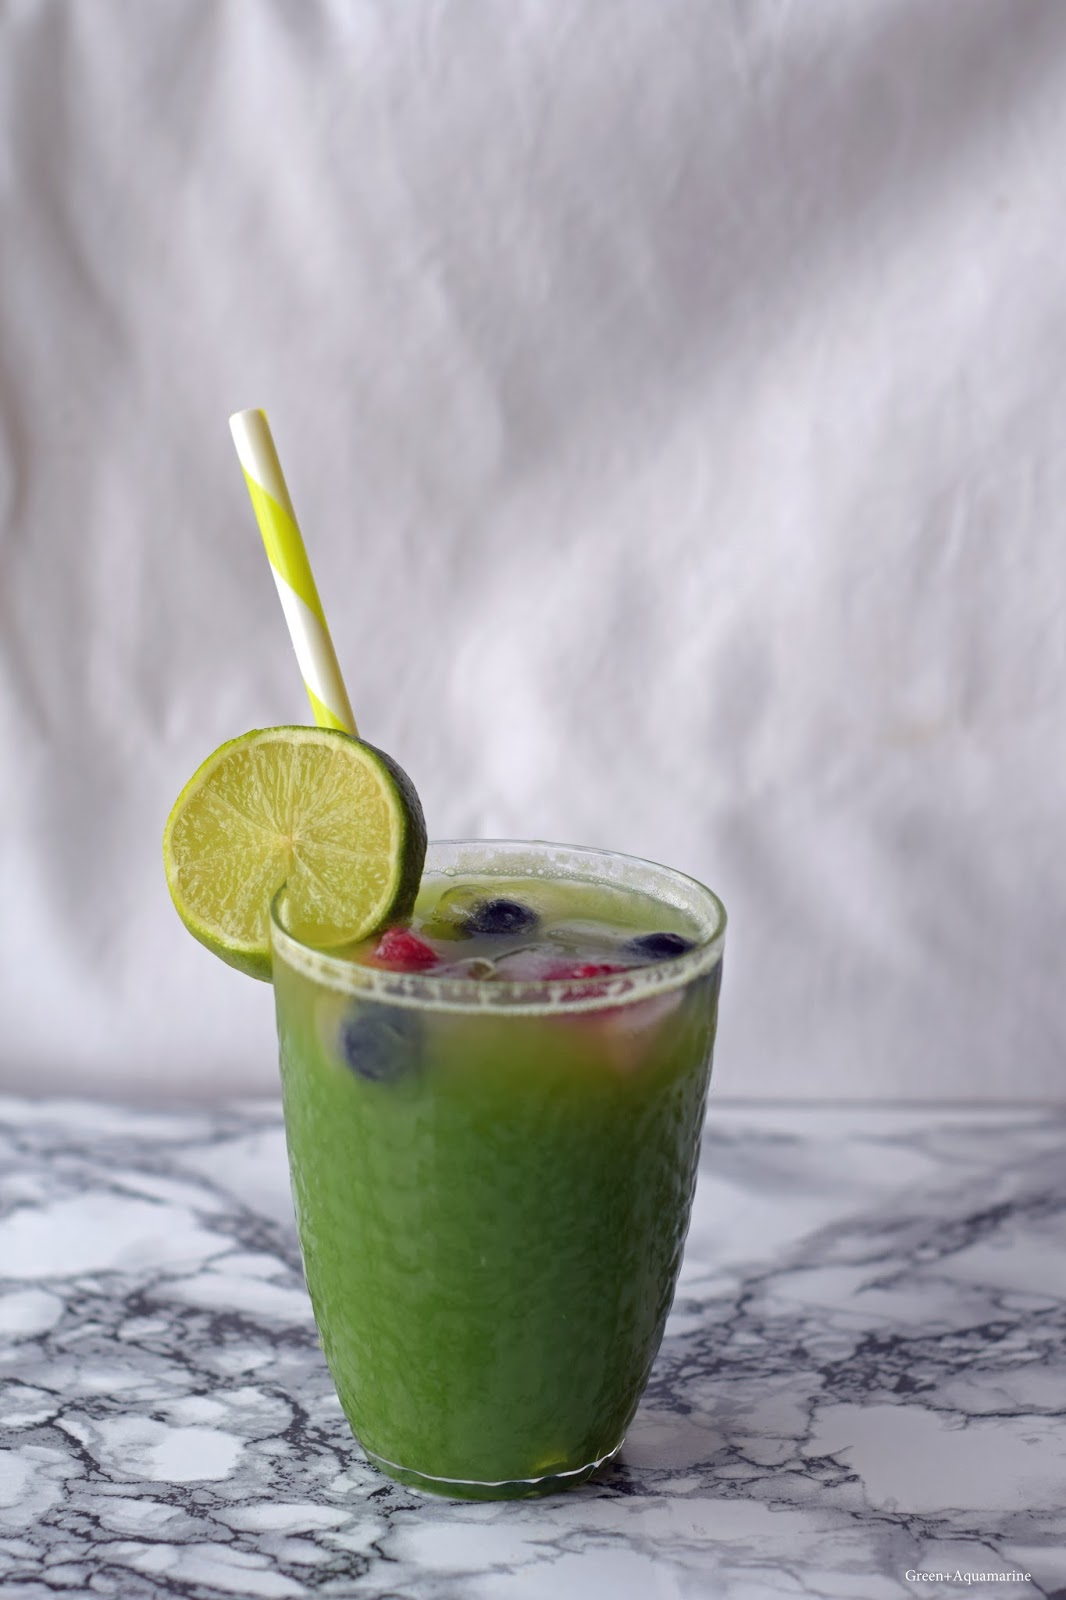 Cucumber, matcha, lime and ginger drink recipe, perfect for summer mocktails. Via @eleanormayc